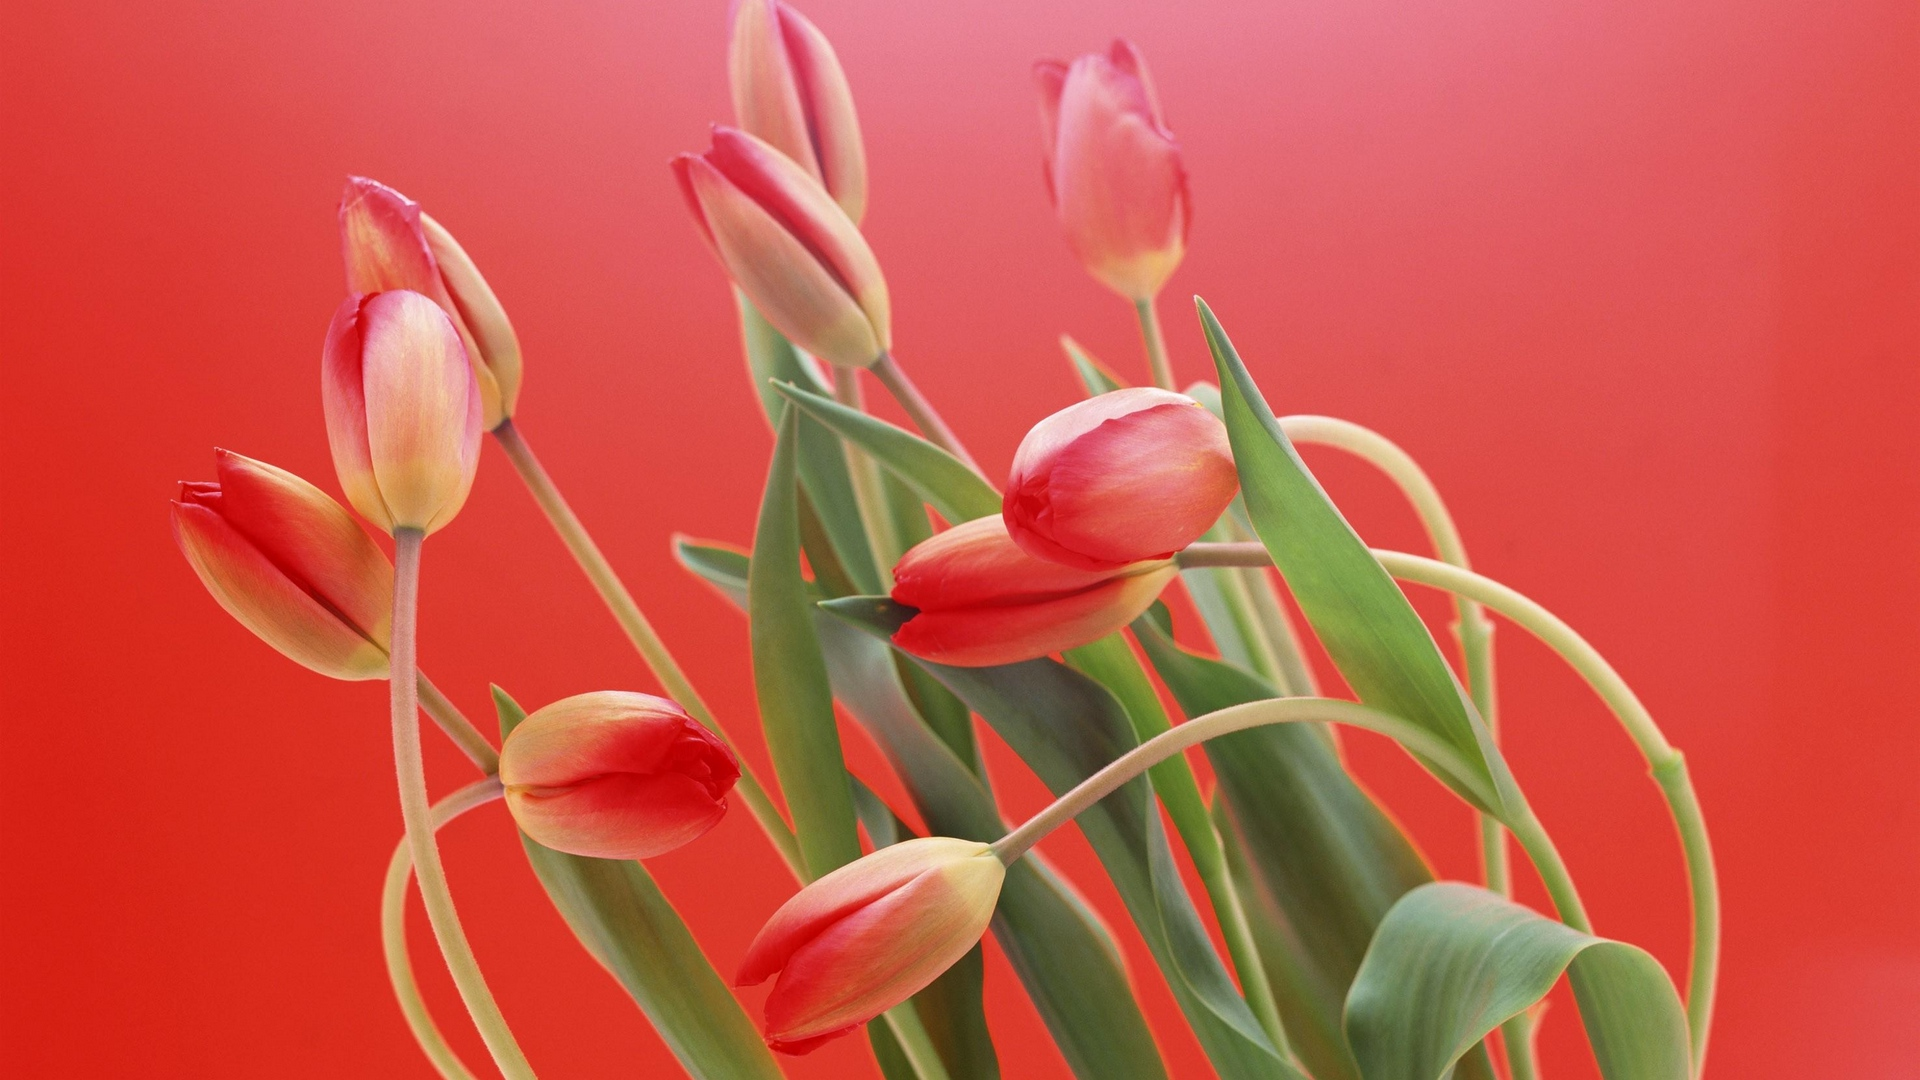 prime,and,pinko,tulips,blossom,cherry,red,peak,background,flush,scope,flowers,ruby,backdrop,redness